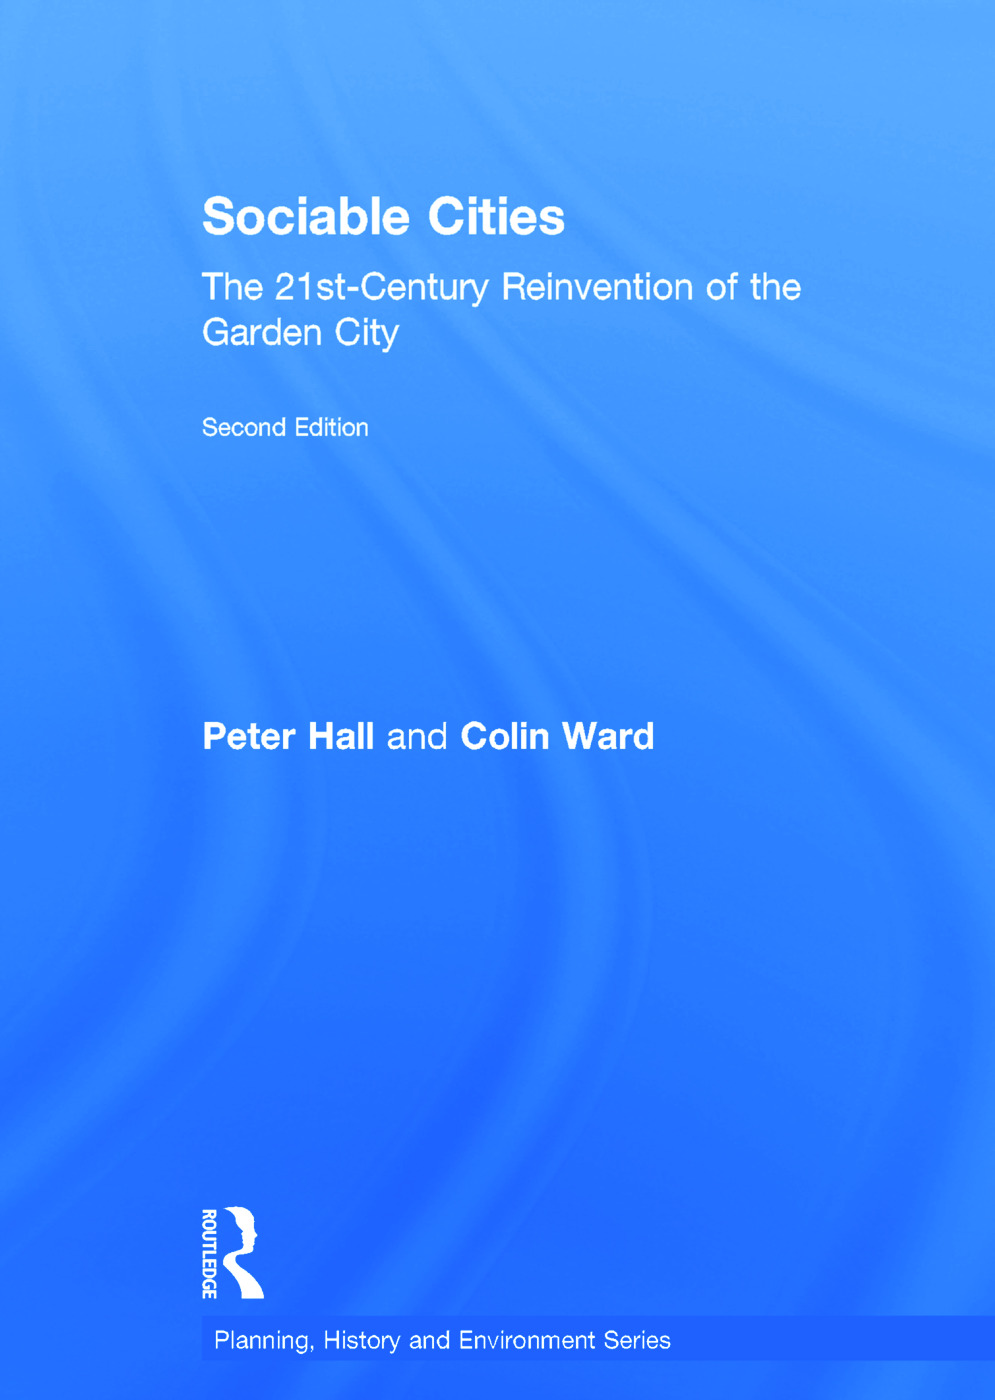 Sociable Cities: The 21st-Century Reinvention of the Garden City book cover